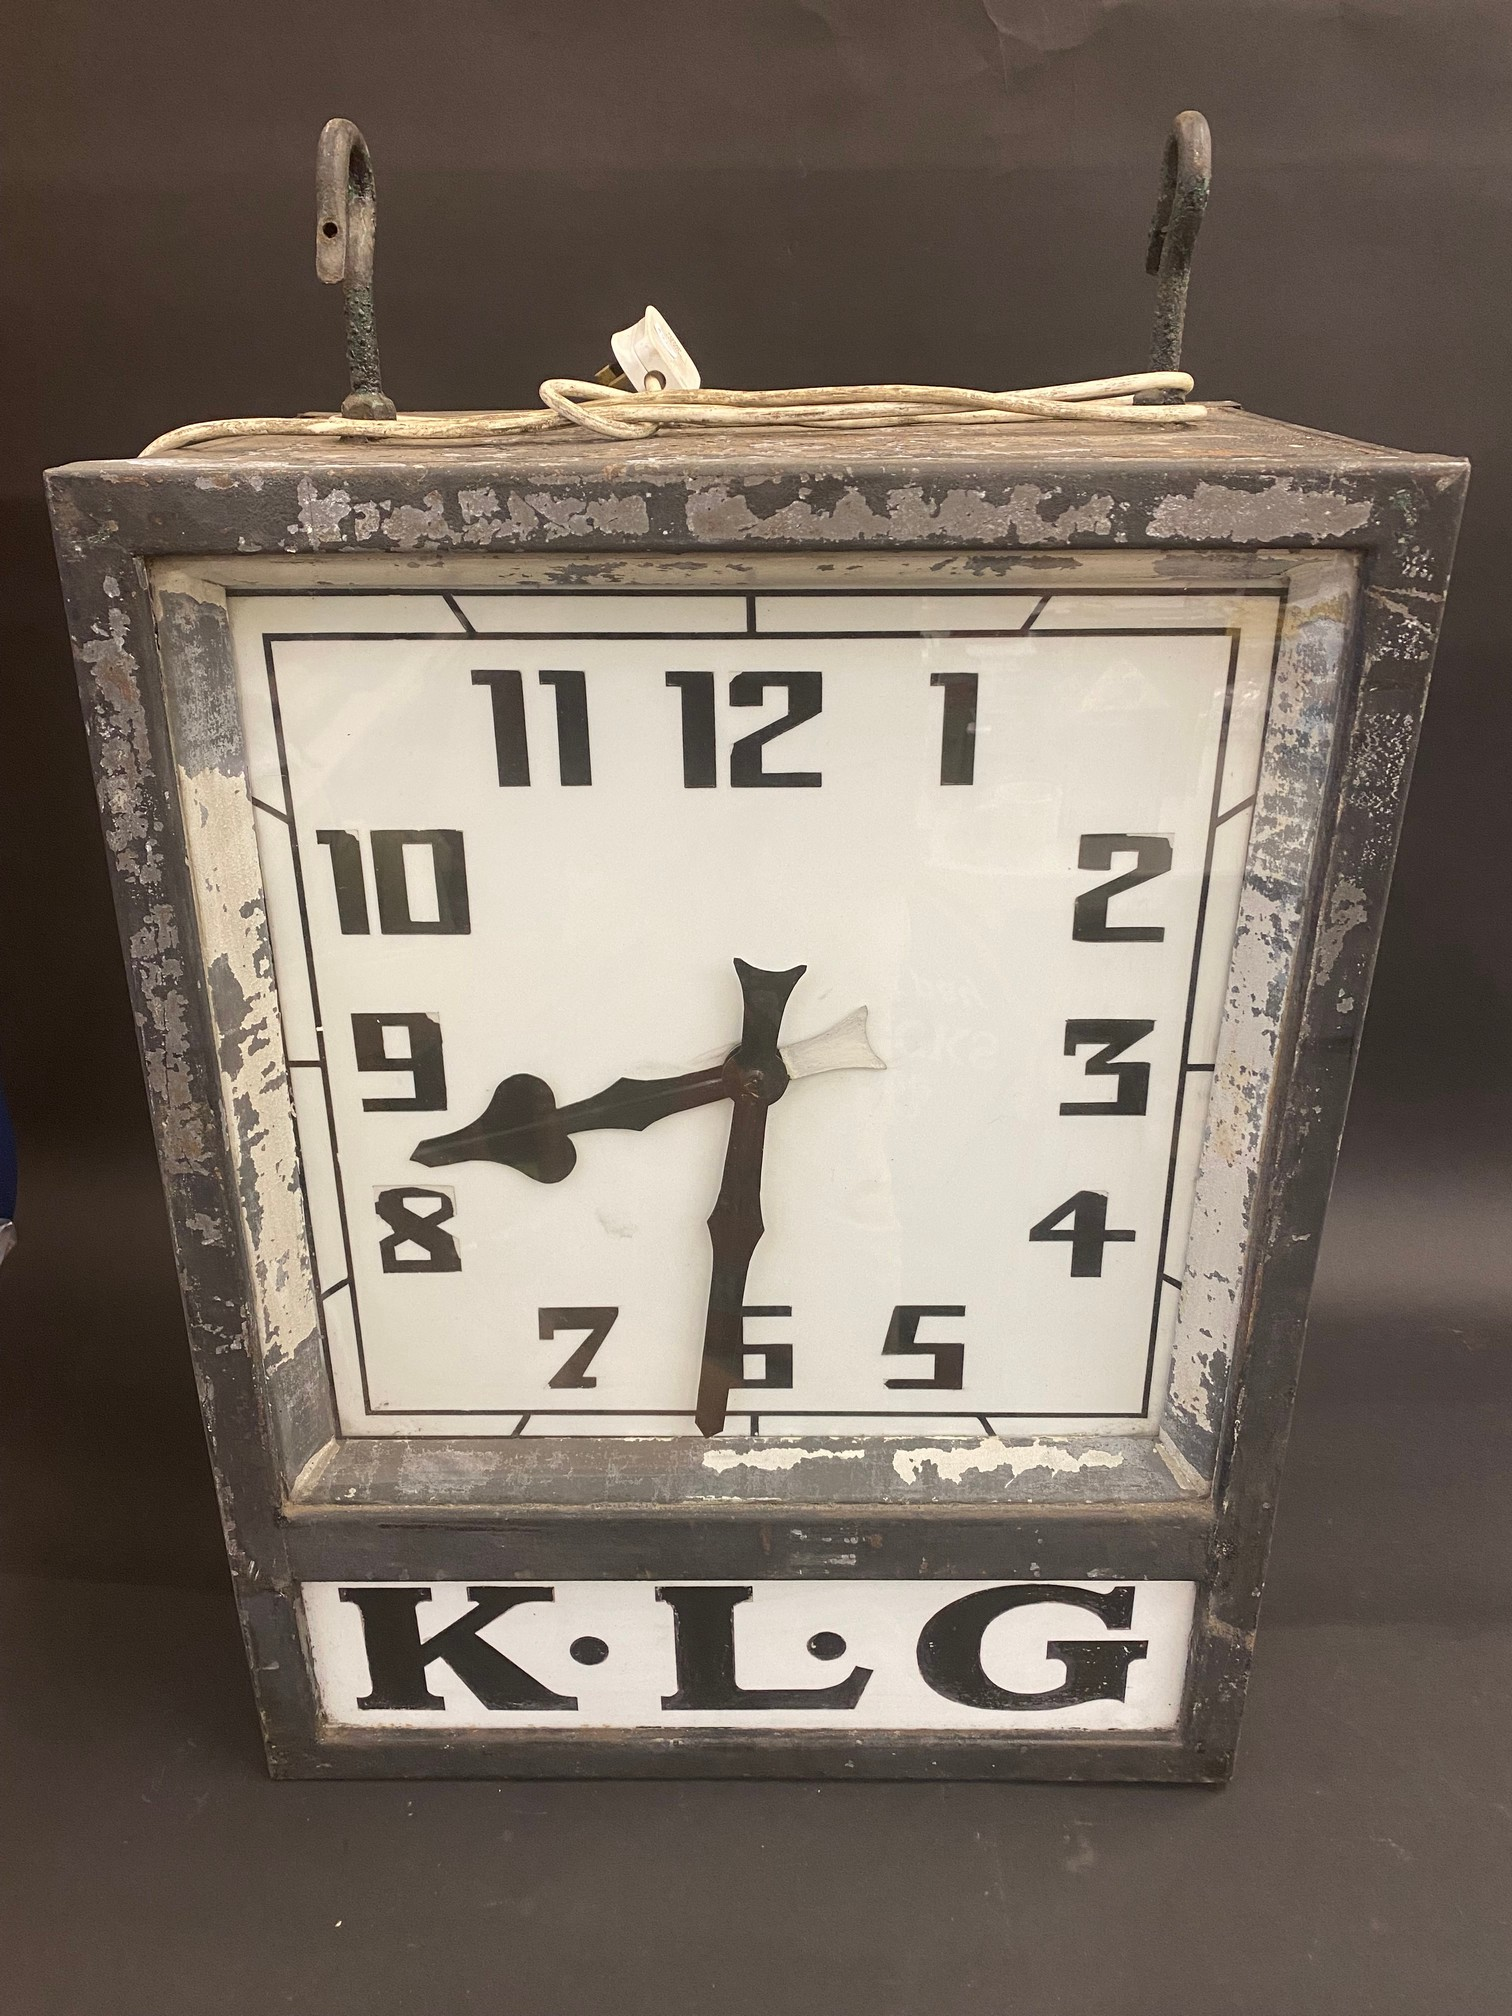 A K.L.G. garage forecourt double sided hanging clock of unusual and attractive form, in very